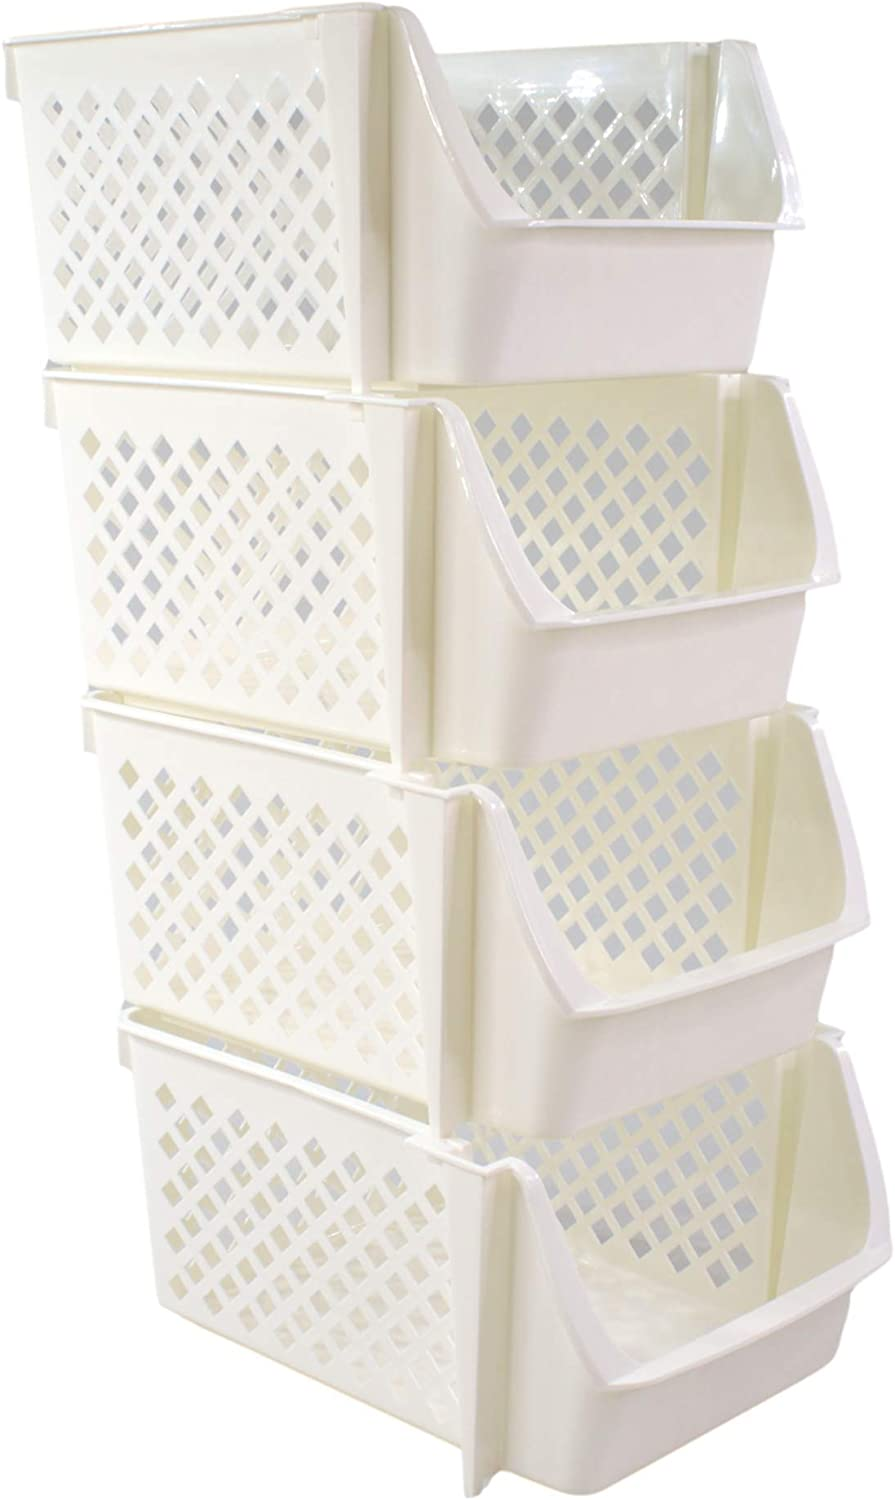 Bee Neat Stackable Storage Baskets for Vegetables Snacks Food Toys - Plastic Storage Bins for Organizing Your Kitchen Pantry Bathroom Playroom Cabinets and Under Sink - White - Pack of 4